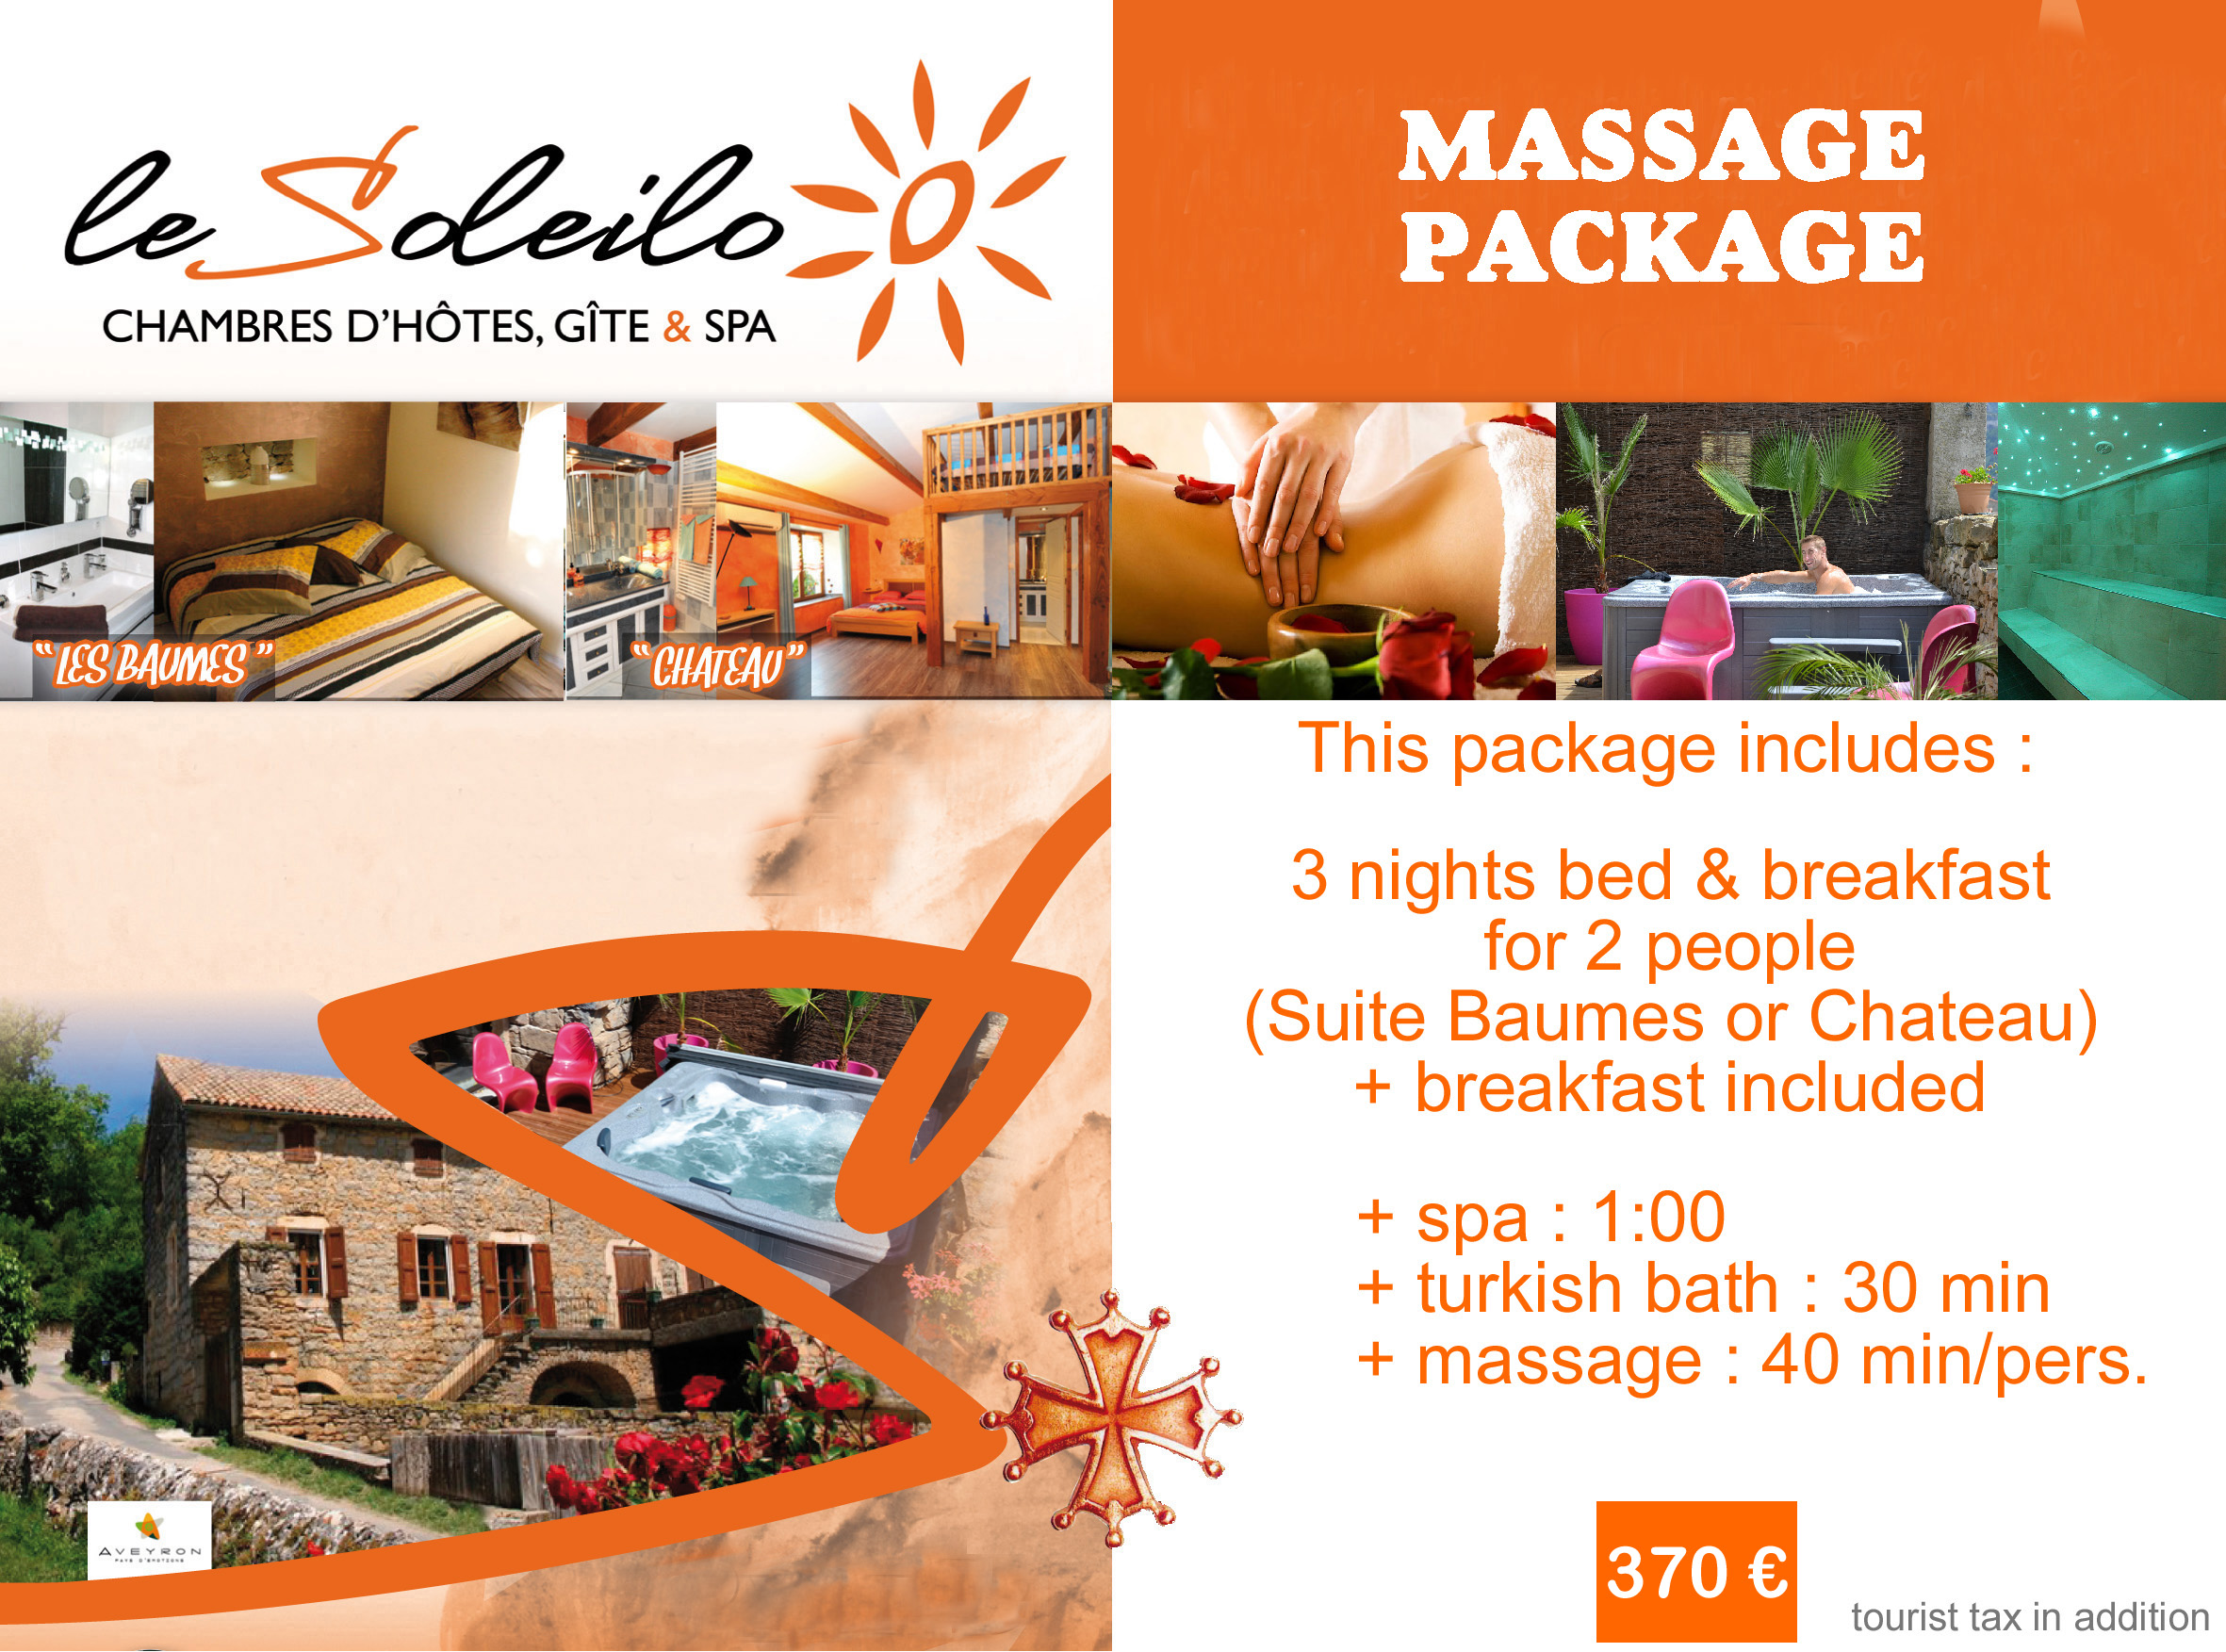 Massage package : bed and breakfast in south France with massage, spa and turkish bath